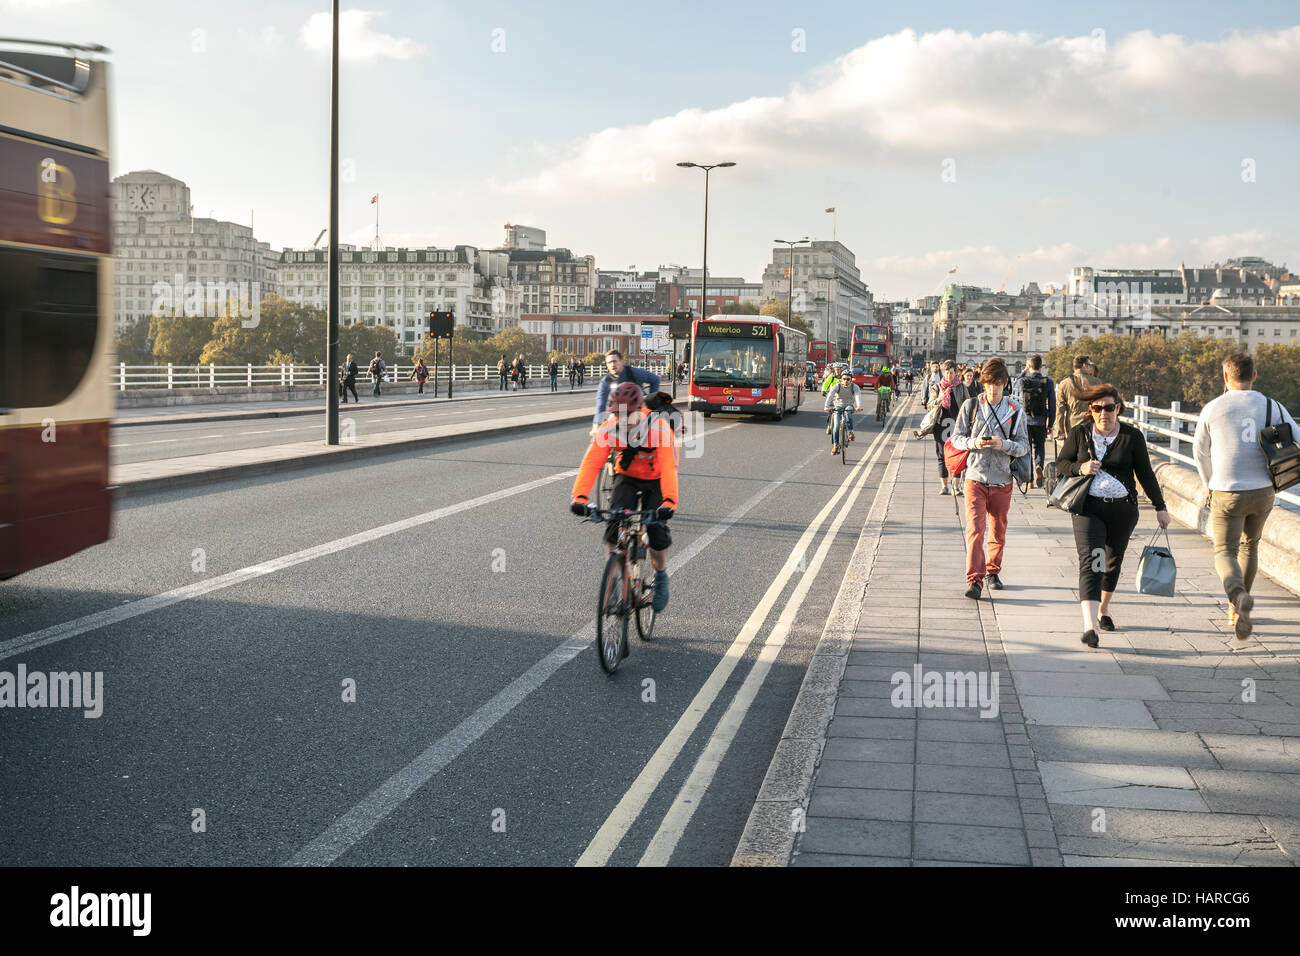 London bus, people and bicyclists crossing Waterloo bridge - Stock Image